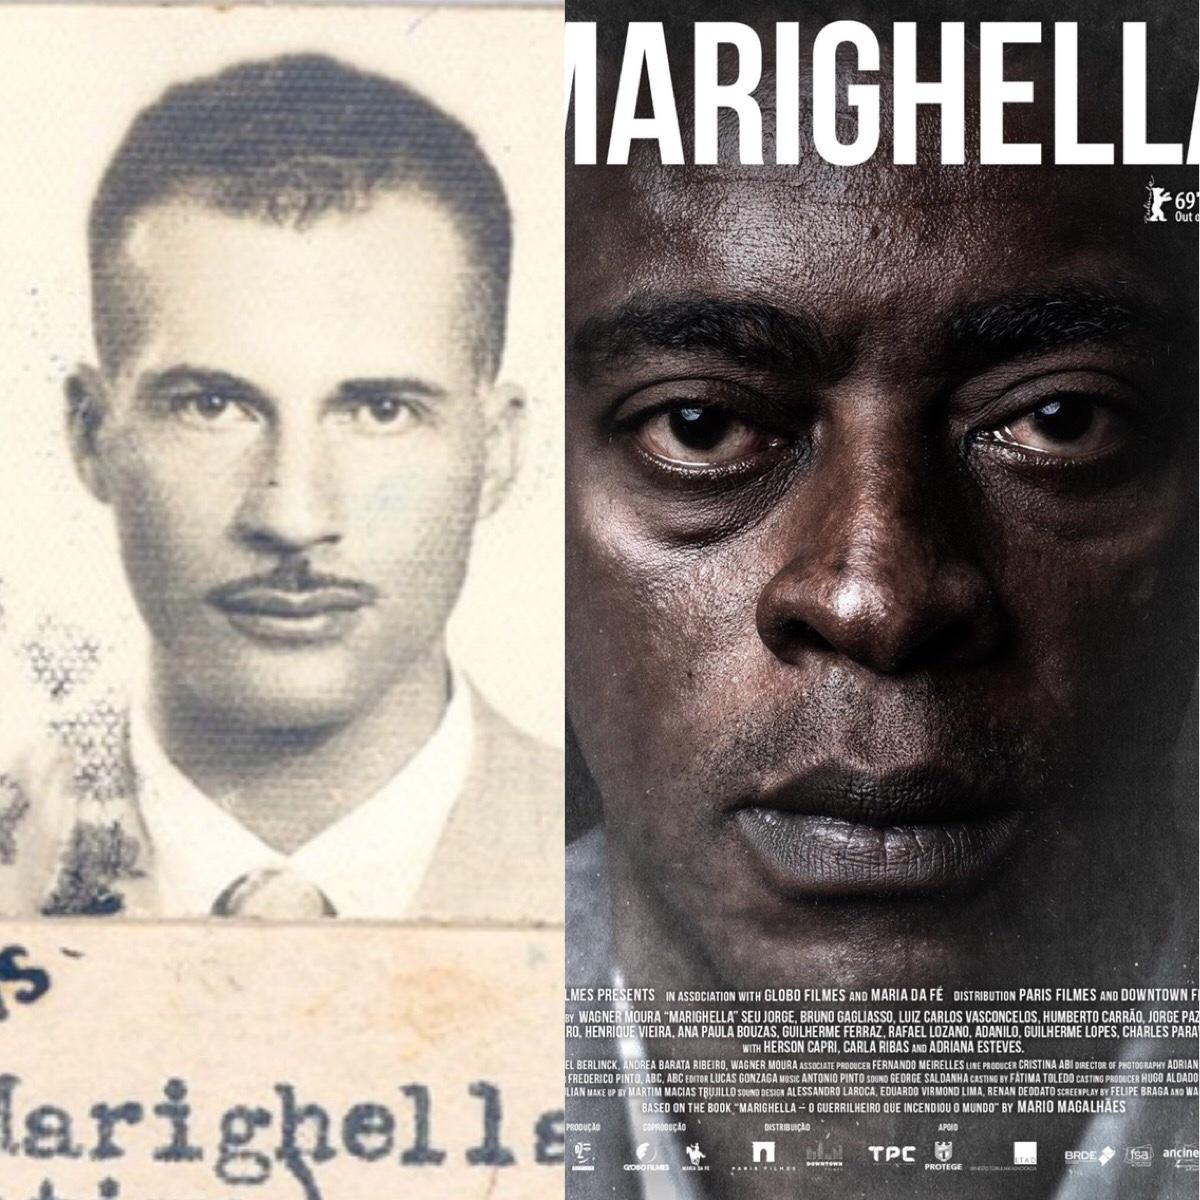 Carlos Marighella Once again shows Brazil's problem with skin color